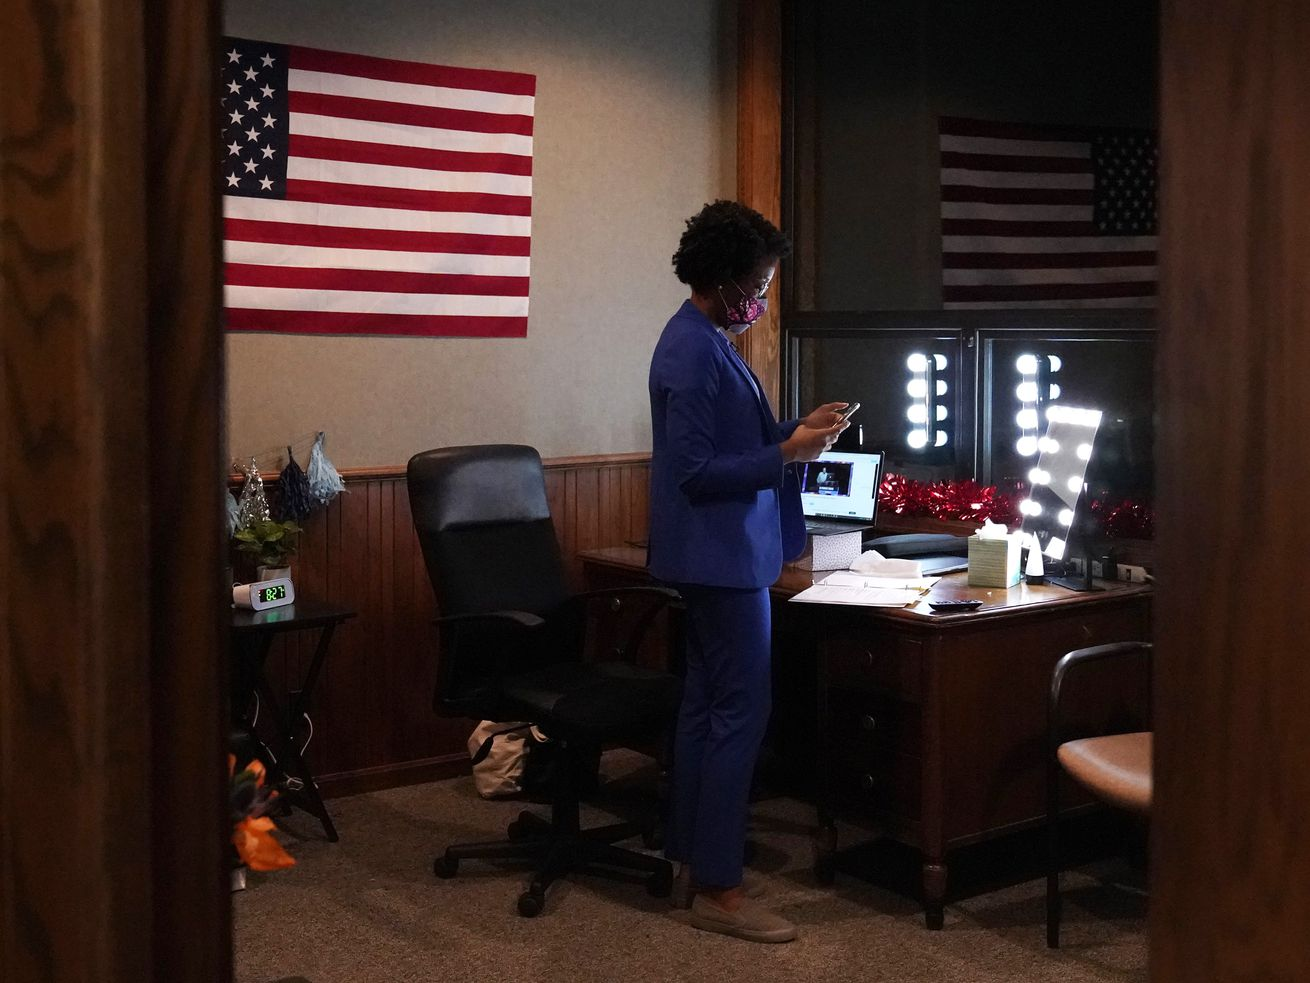 Congresswoman Lauren Underwood checks her phone at an election night headquarter in St. Charles, Ill., Tuesday, Nov. 3, 2020. Lauren Underwood of Naperville and Jim Oberweis of Sugar Grove are the candidates for the 14th U.S. Congressional District seat. (AP Photo/Nam Y. Huh) ORG XMIT: ILNH101